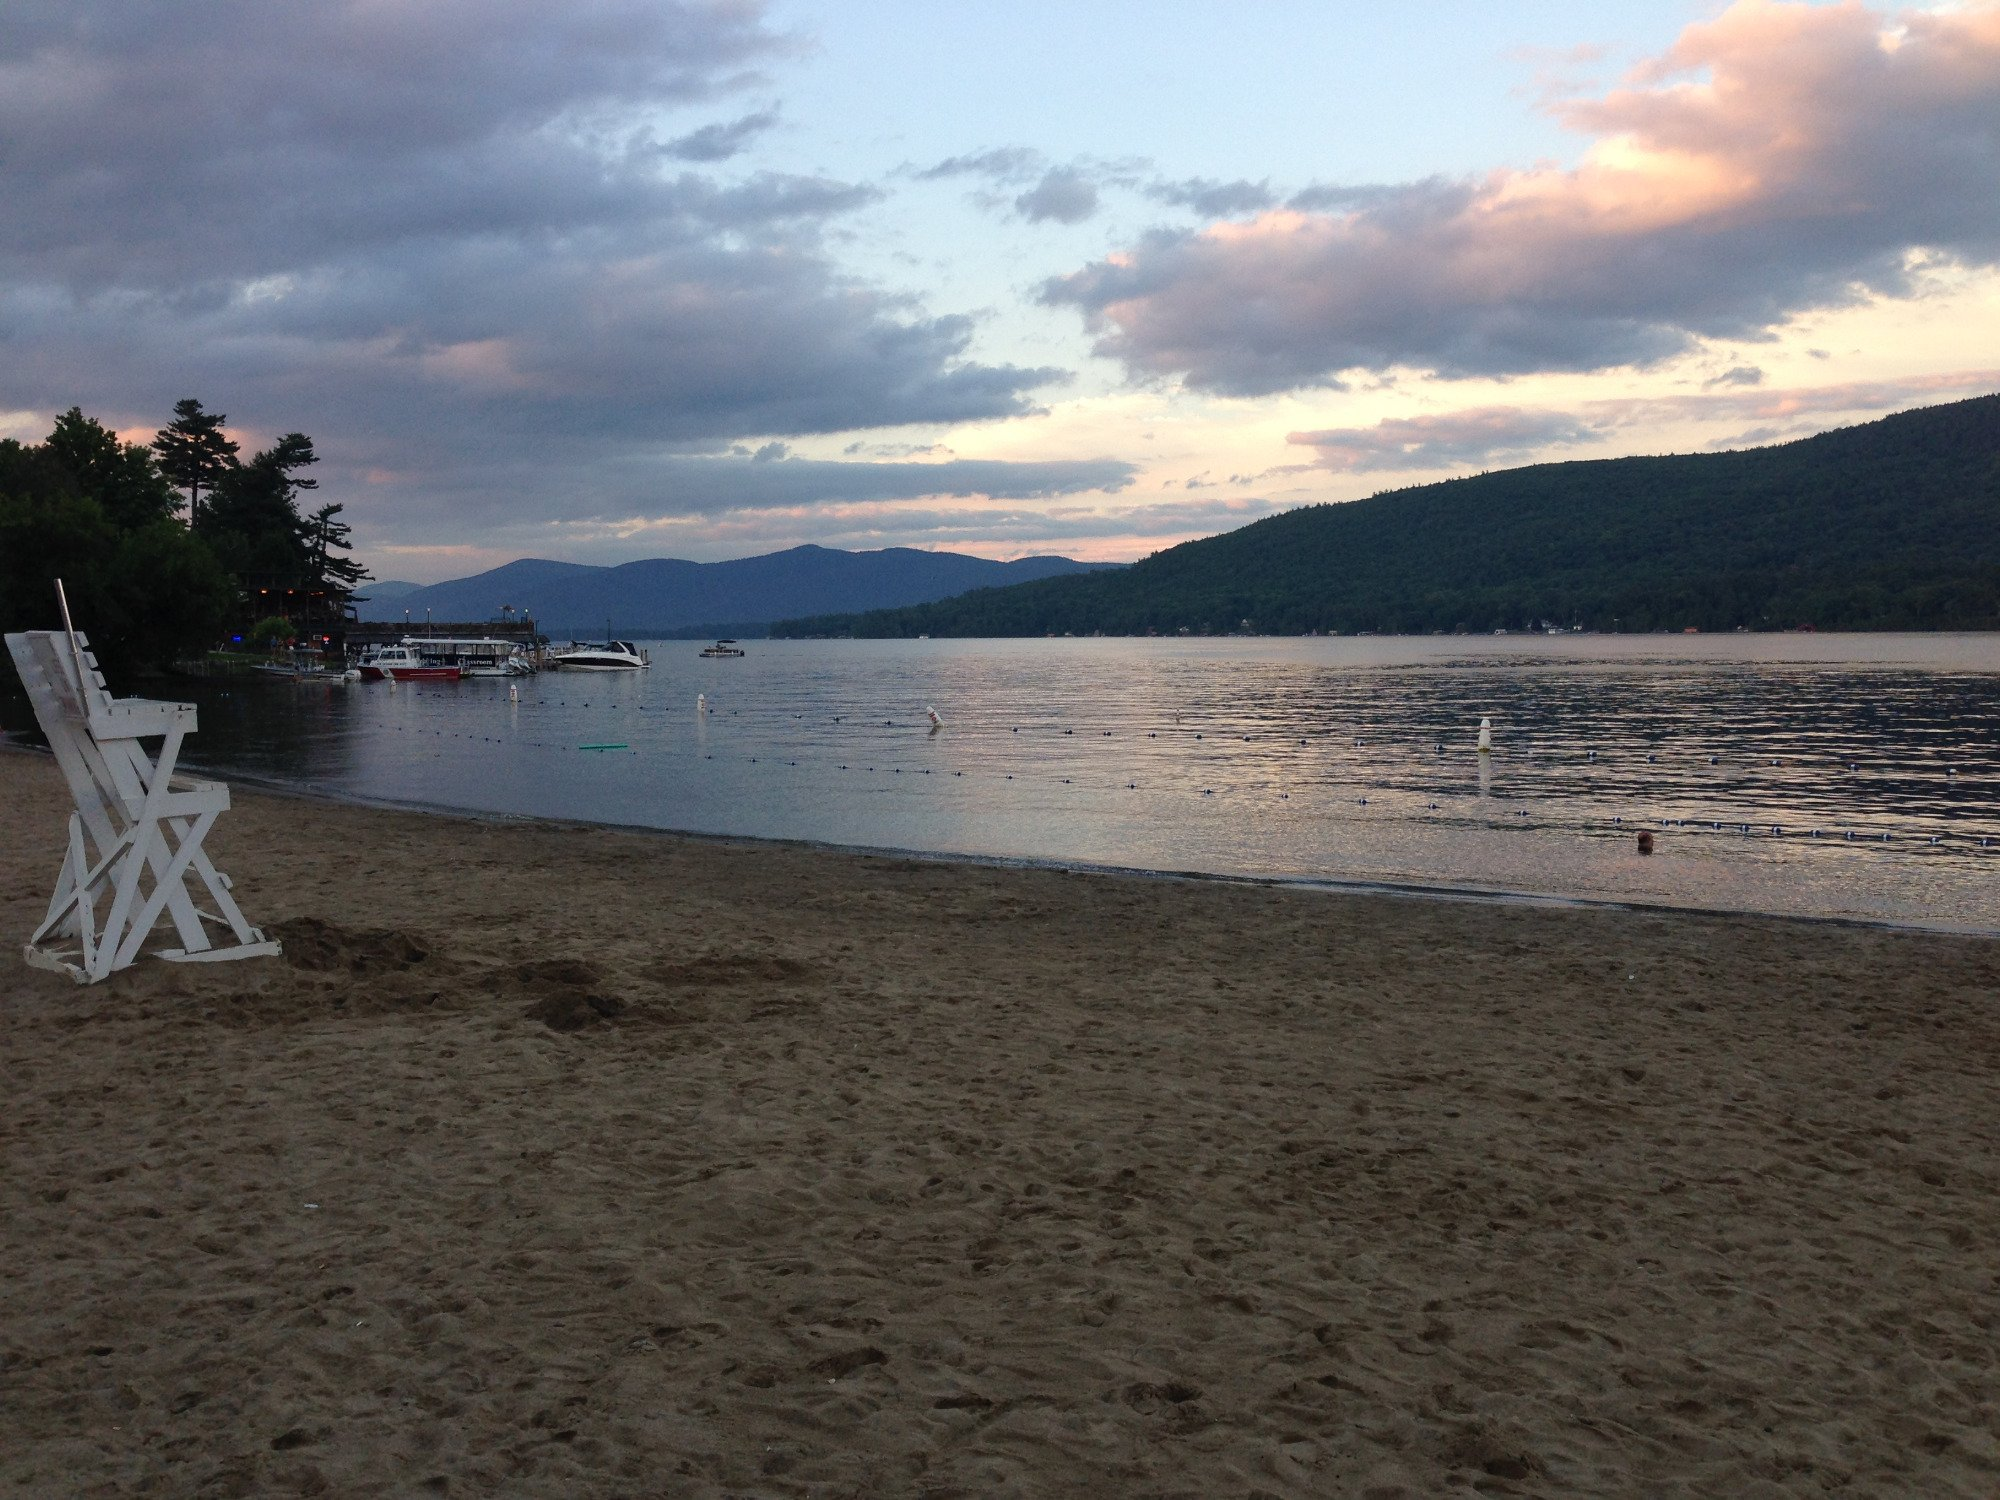 Shepard Park Beach, Lake George, NY